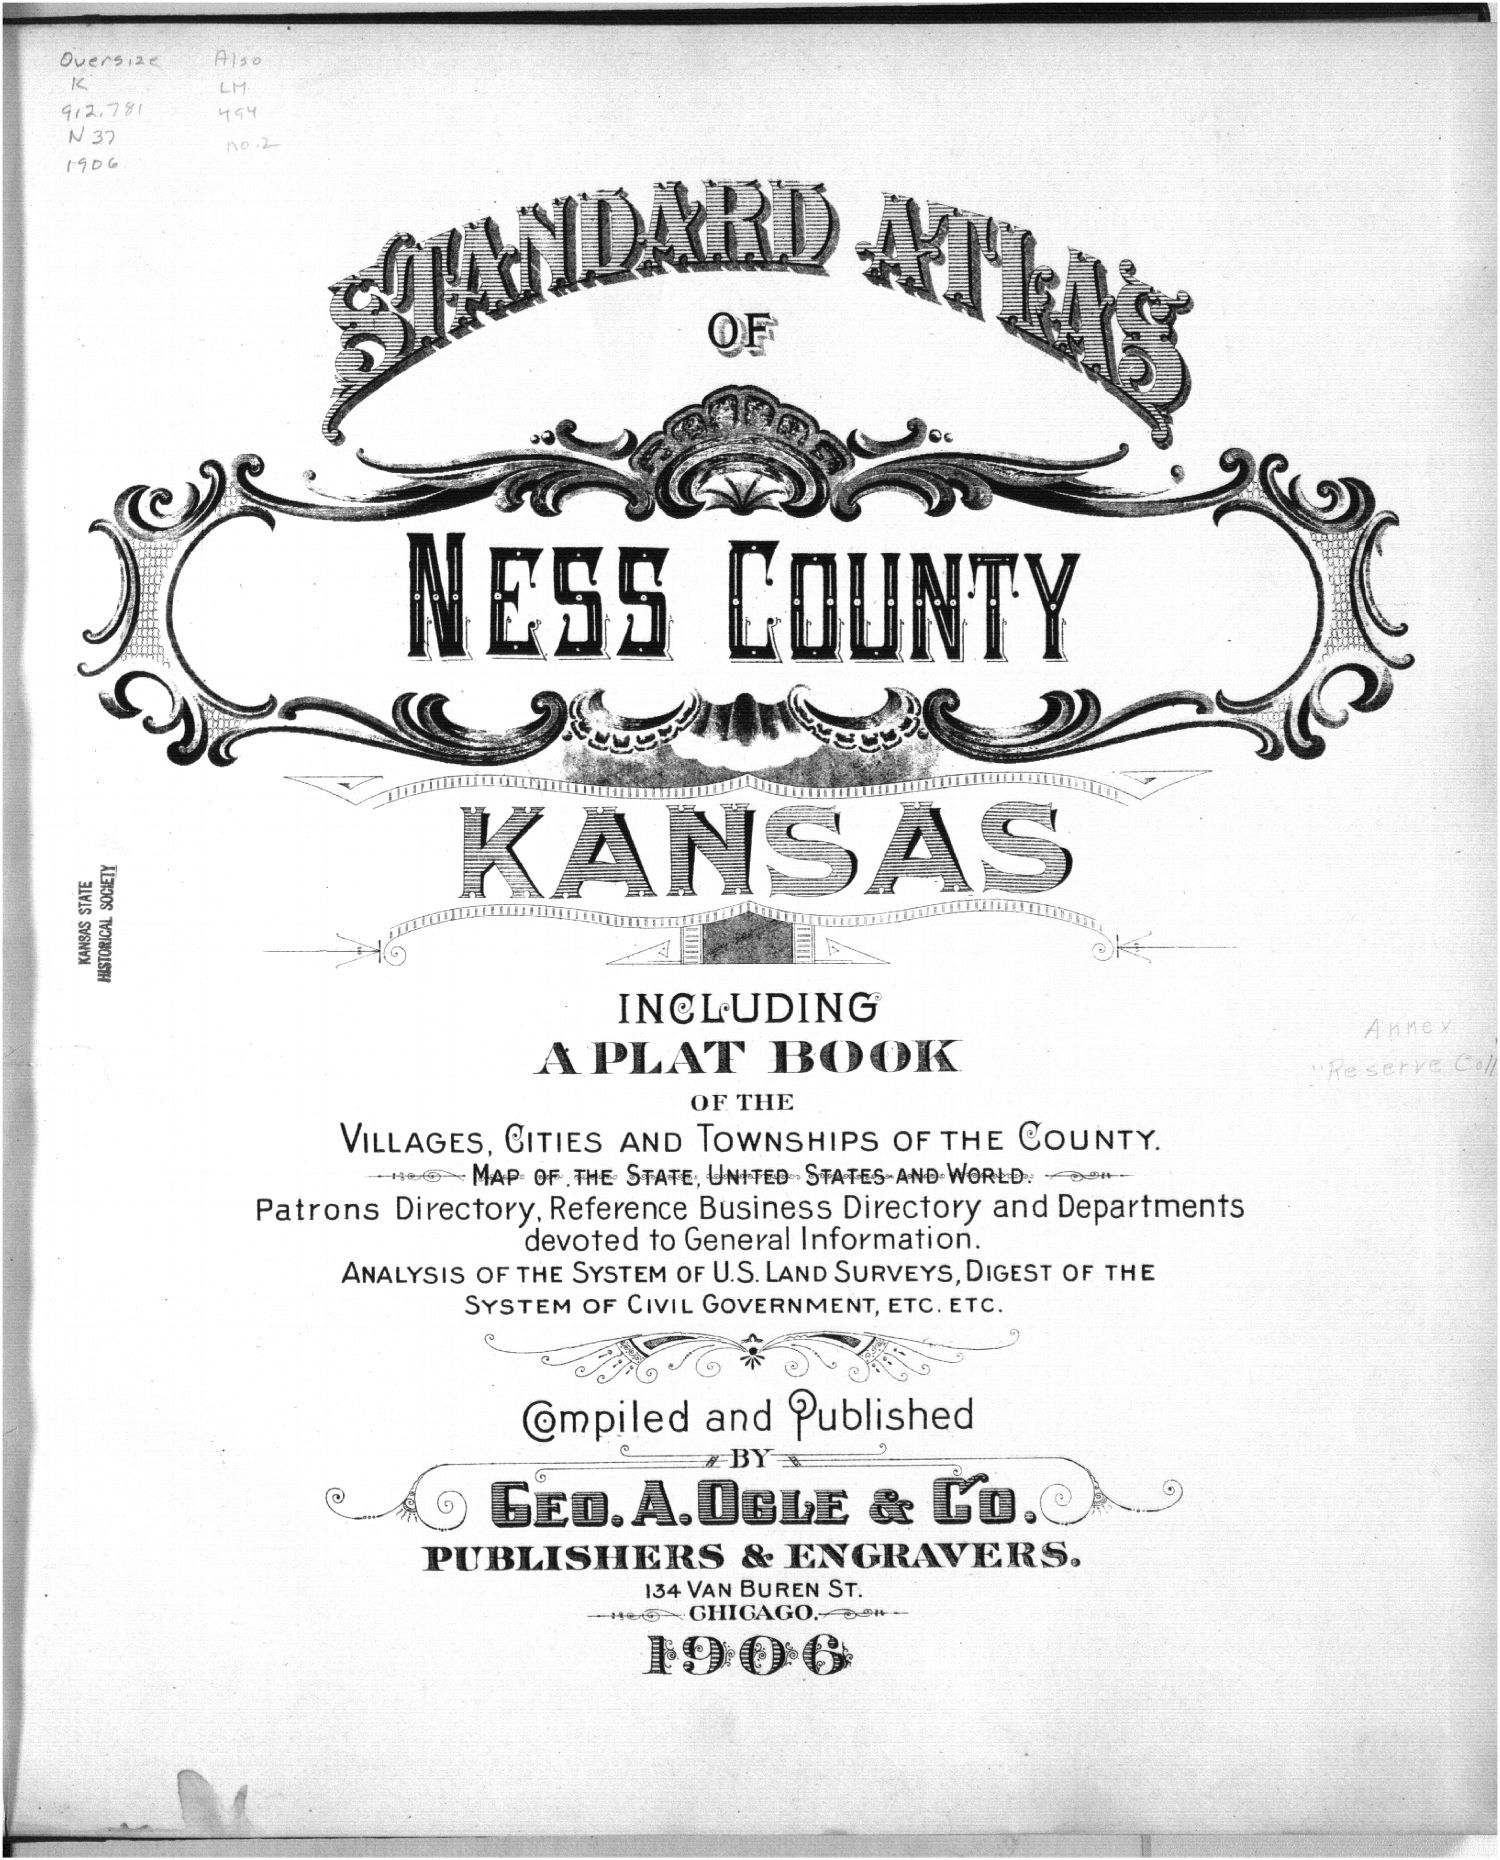 Standard atlas of Ness County, Kansas - Title Page